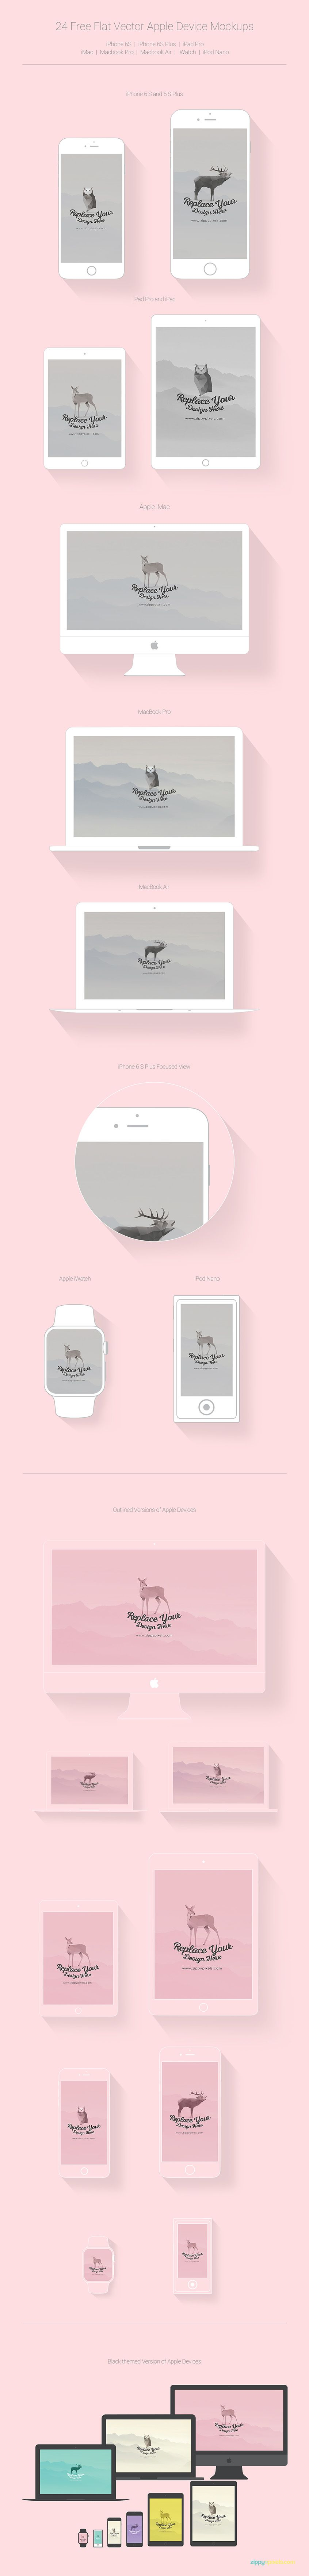 24 Free Flat Vector Apple Device Mockups (All Apple Devices Including iPhone 6S/6S Plus) (24.79 MB) | ZippyPixels | #free #mockup #photoshop